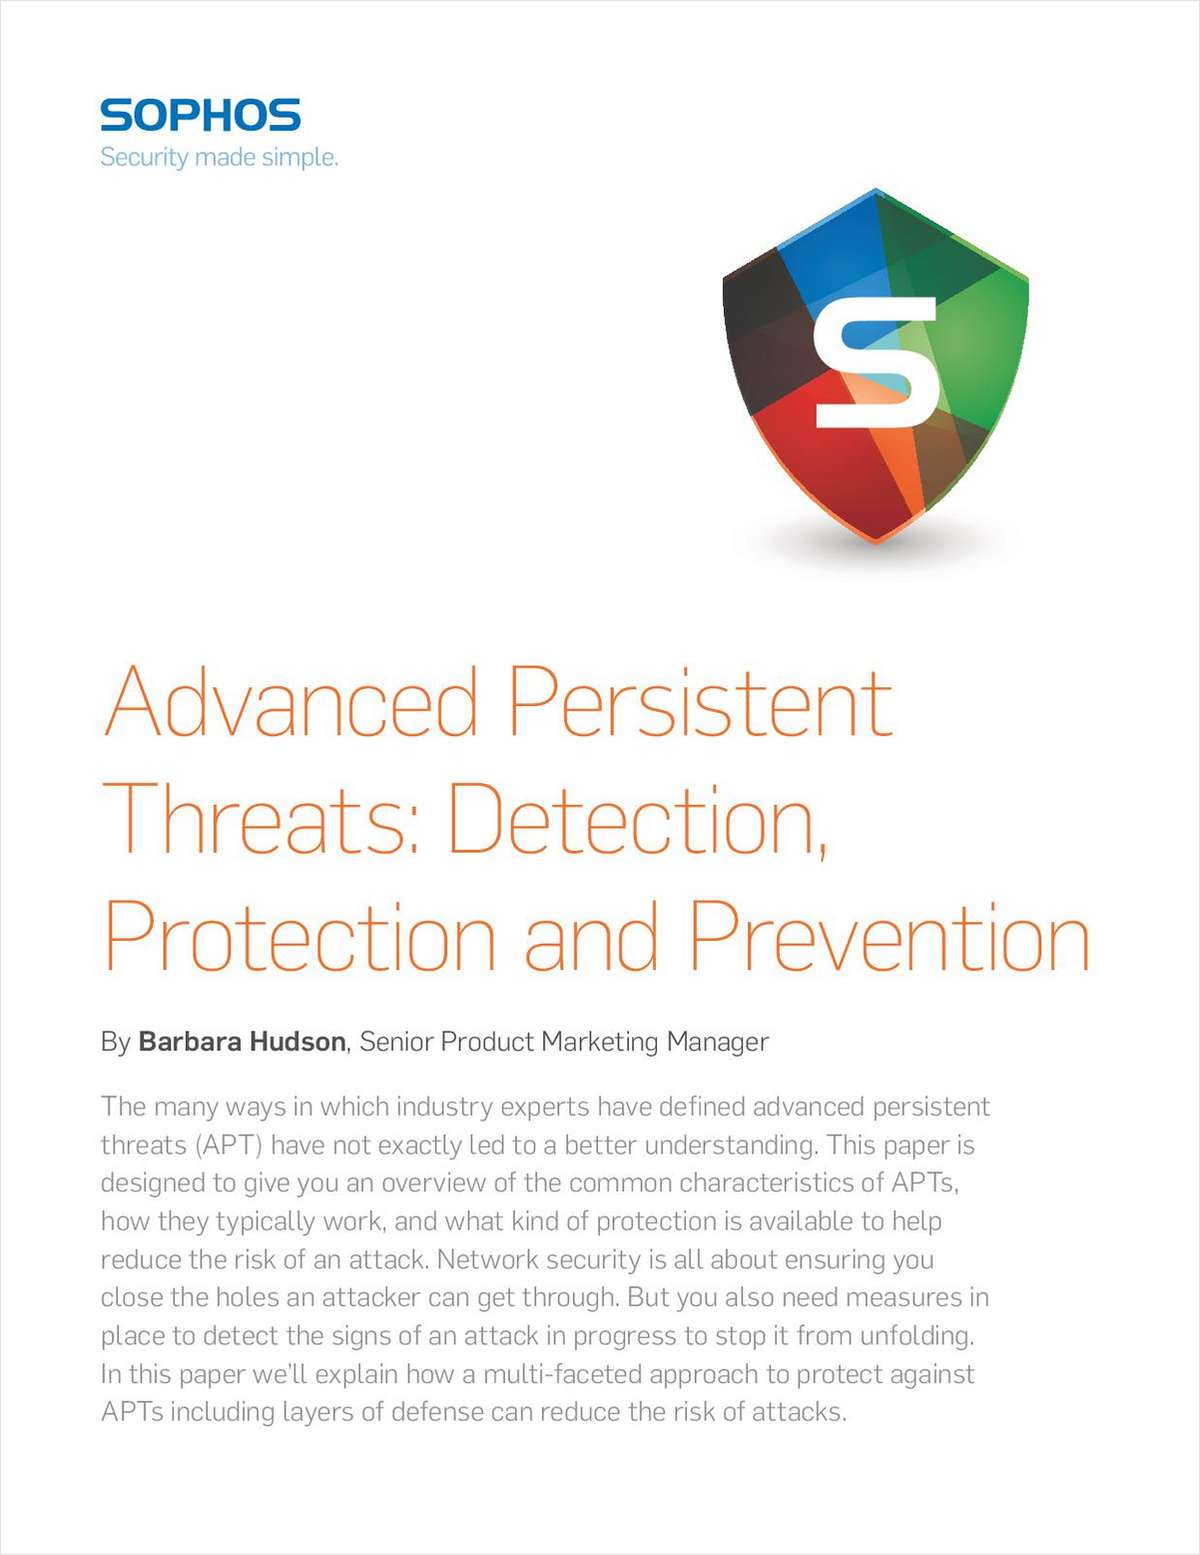 Advanced Persistent Threats: Detection, Protection and Prevention